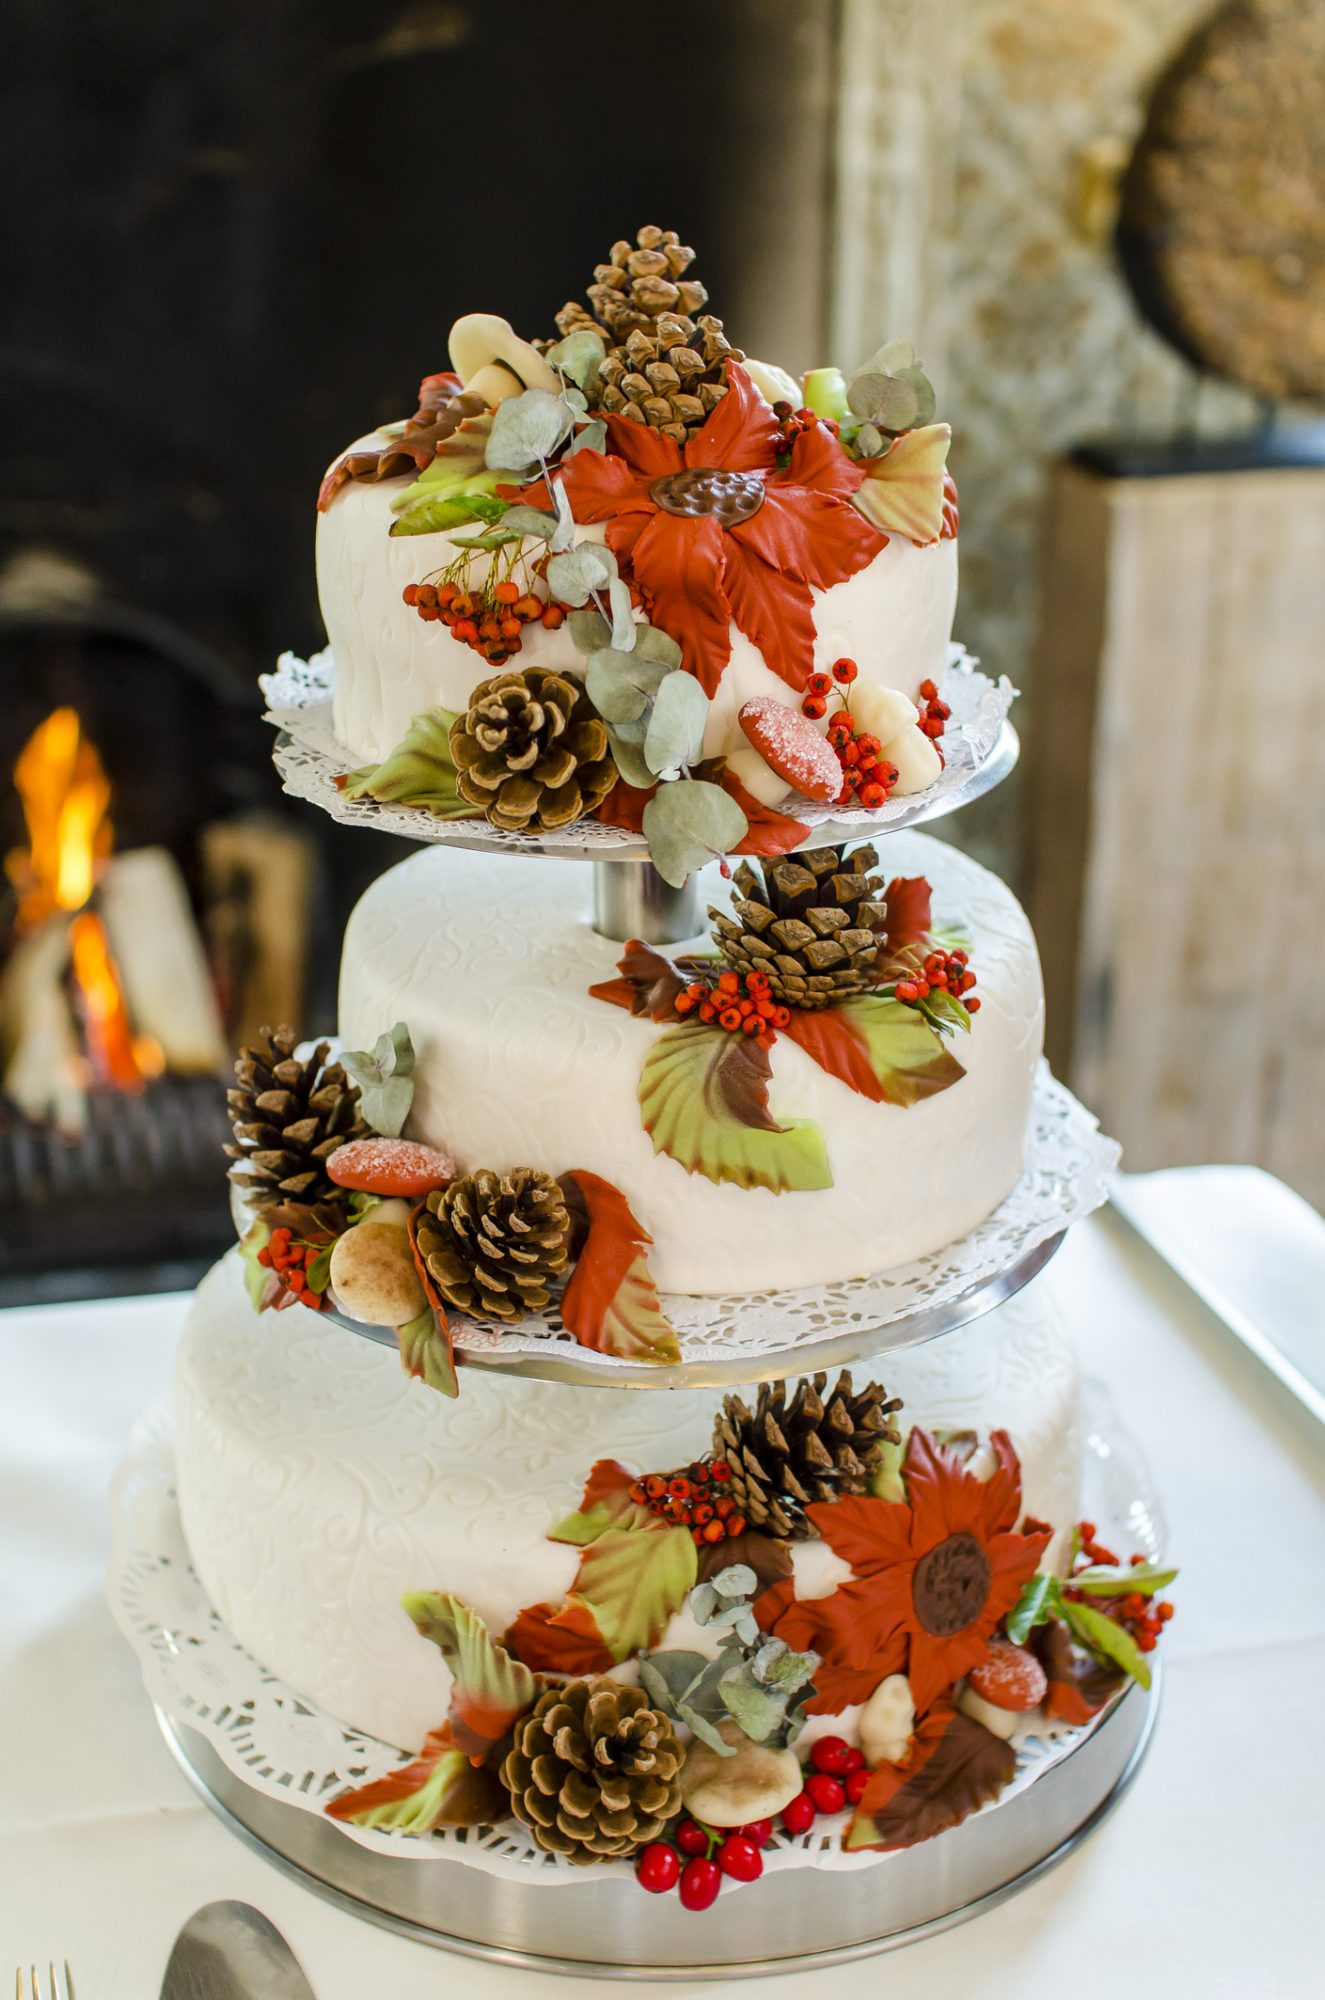 Wedding cake with marzipan and pine cones